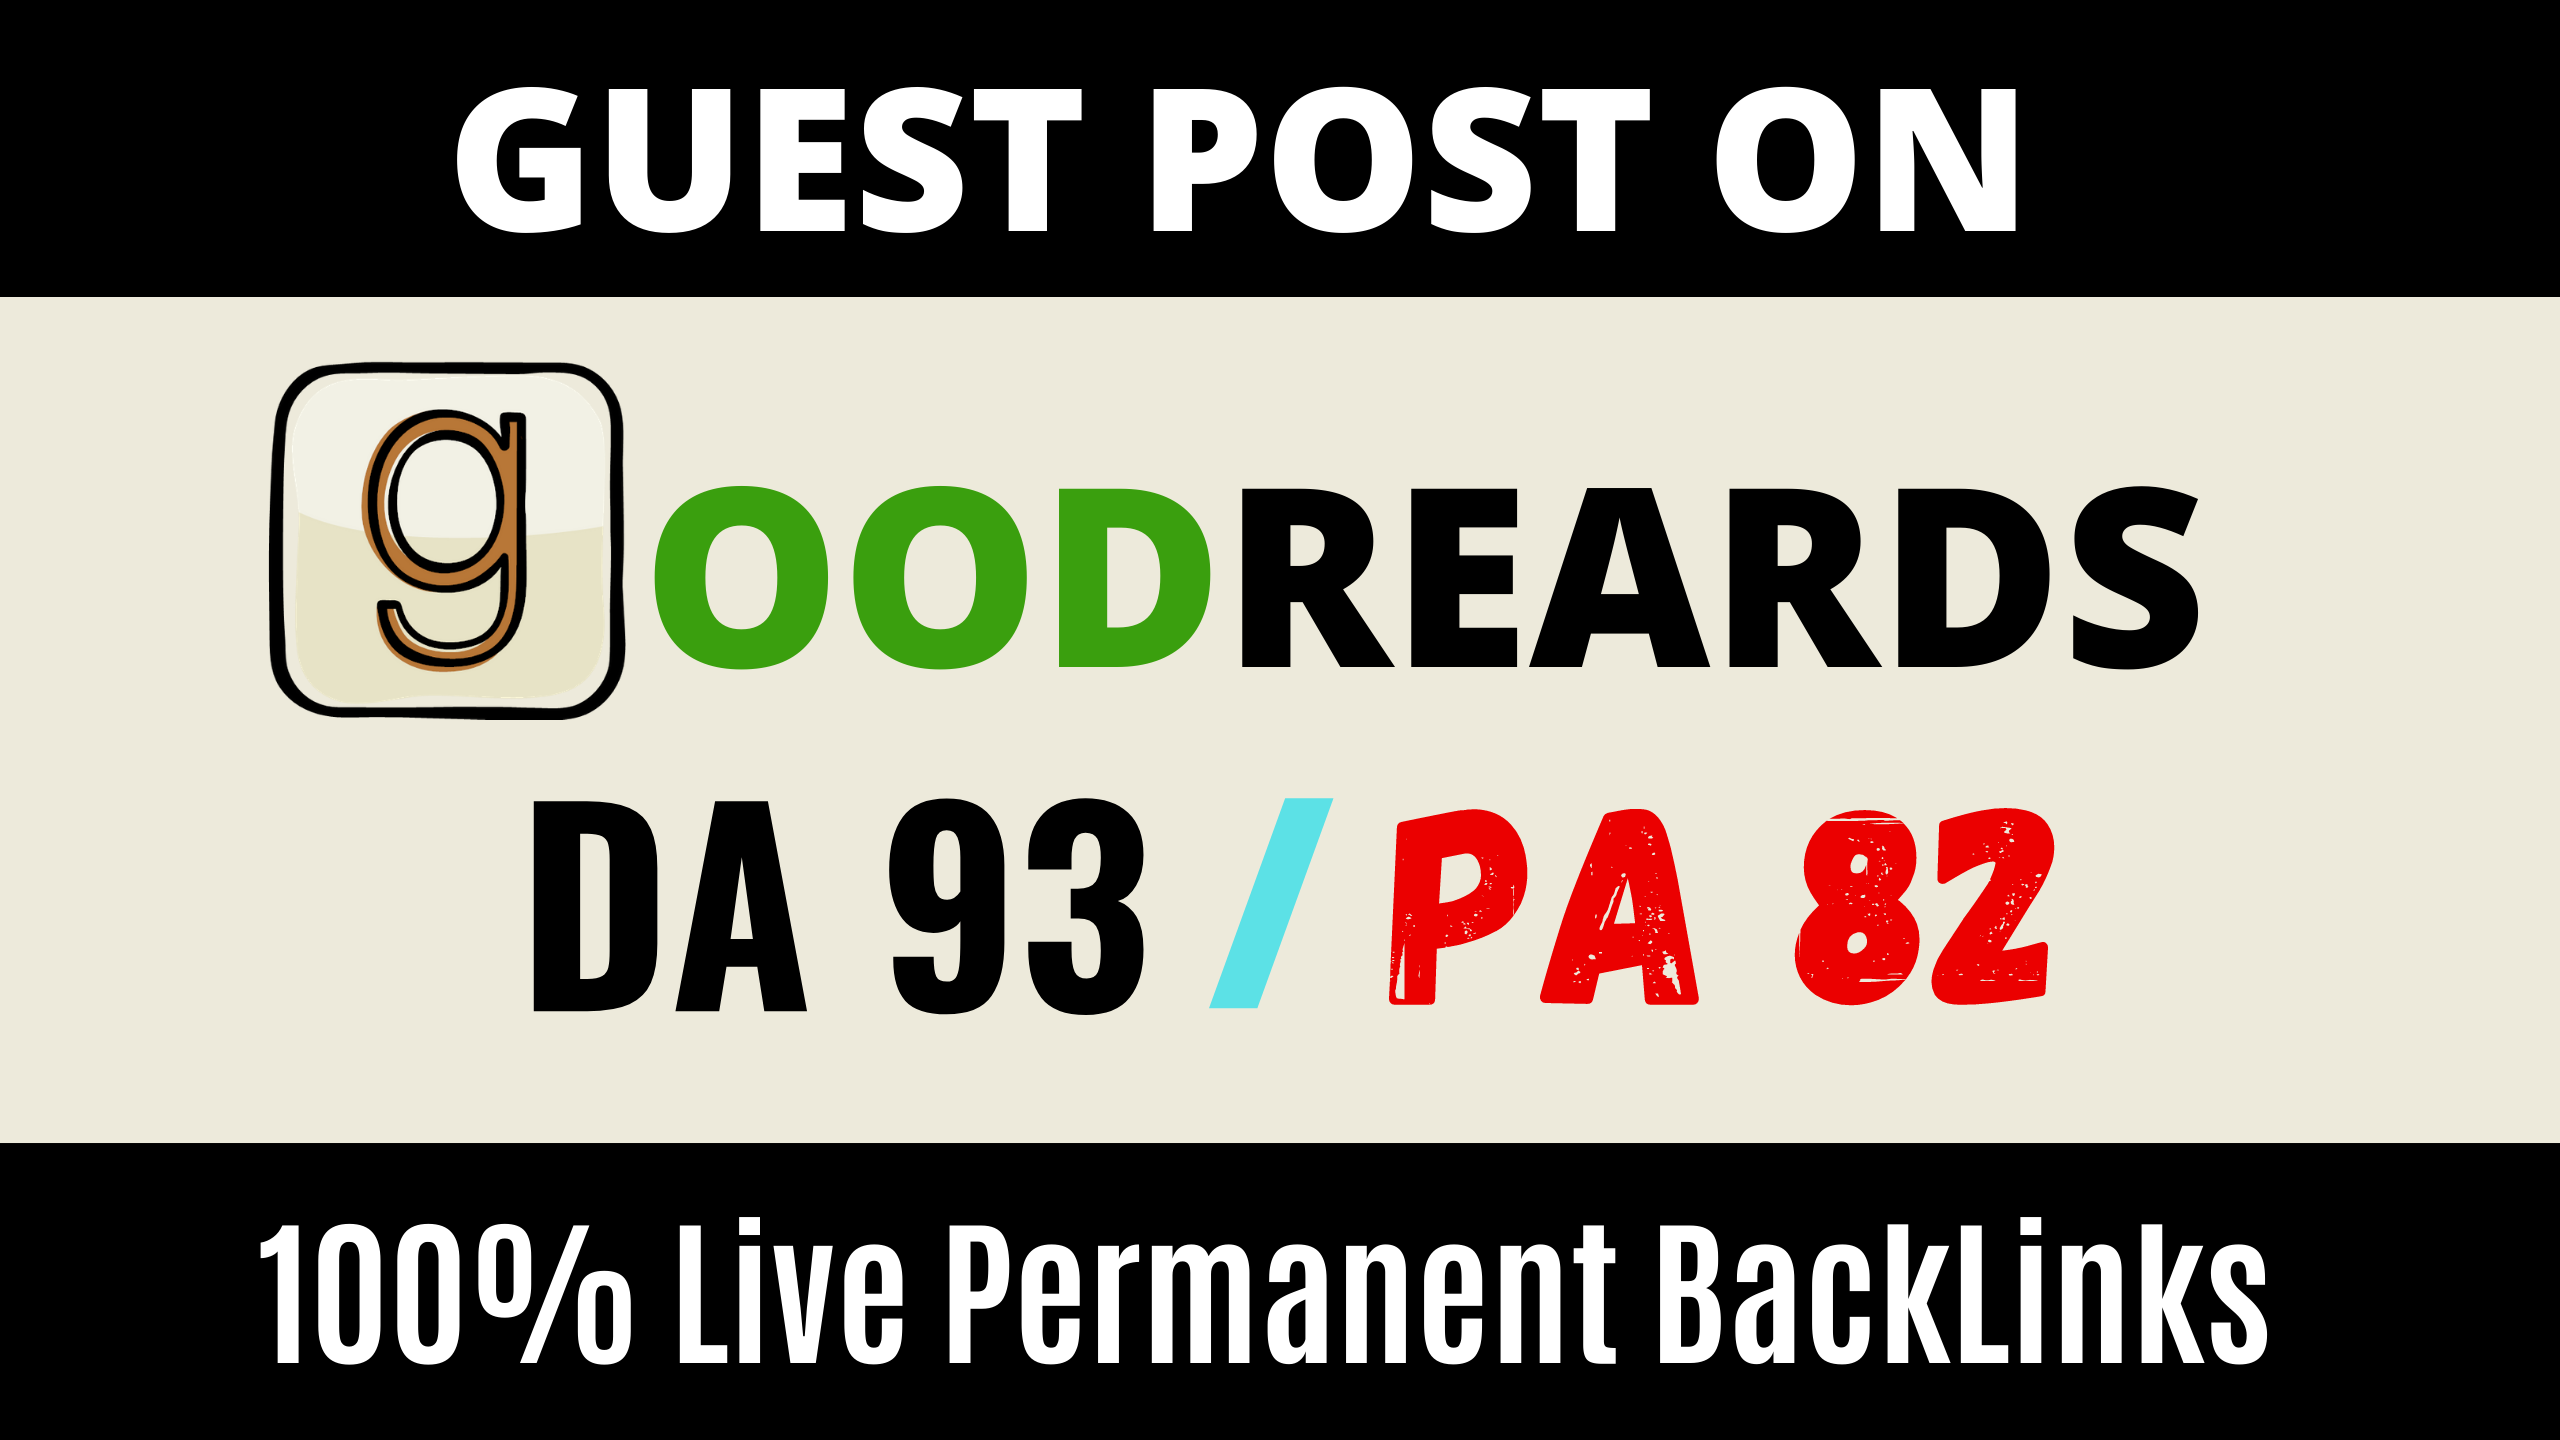 Publish Guest Post Article On High DA93 Goodreads. com with permanent Backlinks